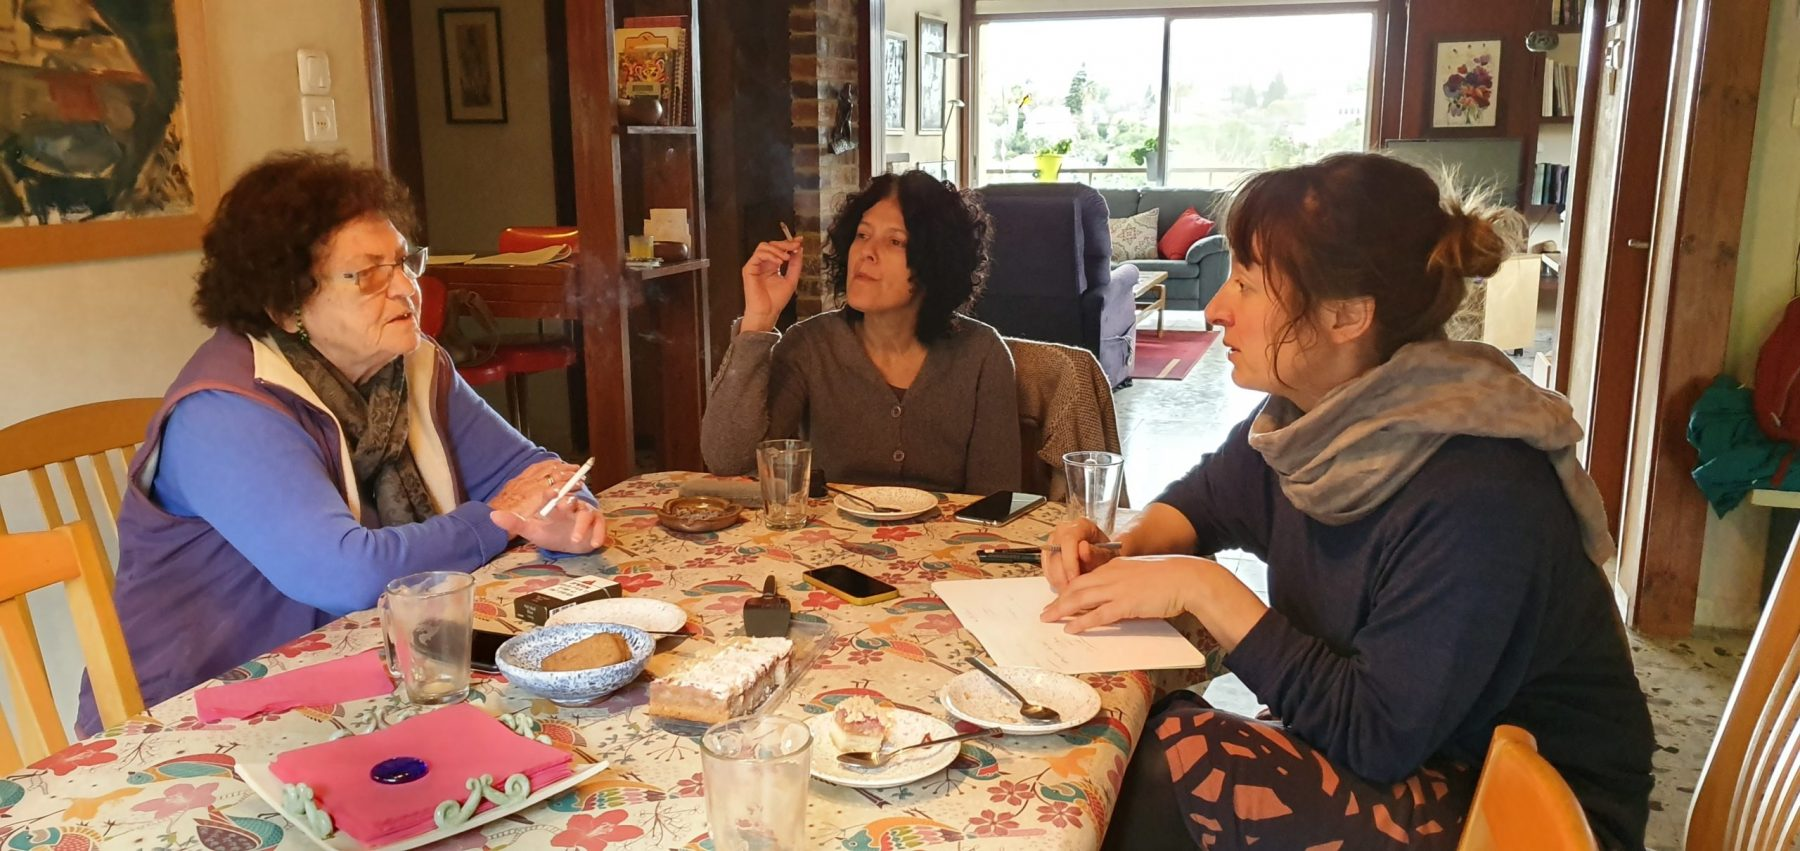 Barbara, Emmie, and Orli around the table